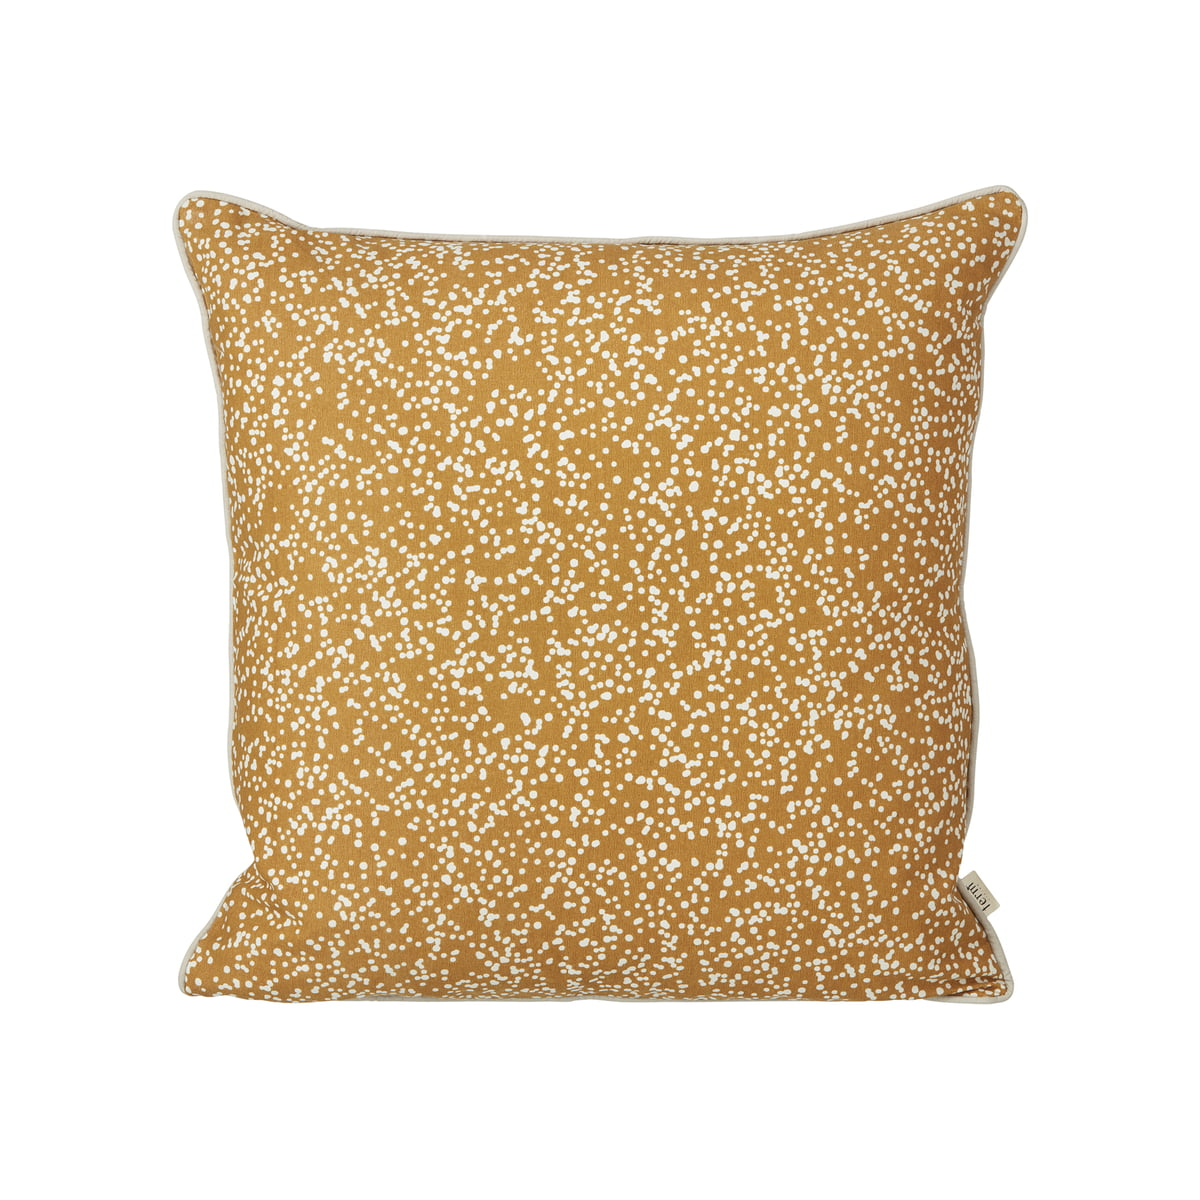 coussin ferm living Dottery Cushion by ferm Living in the shop coussin ferm living